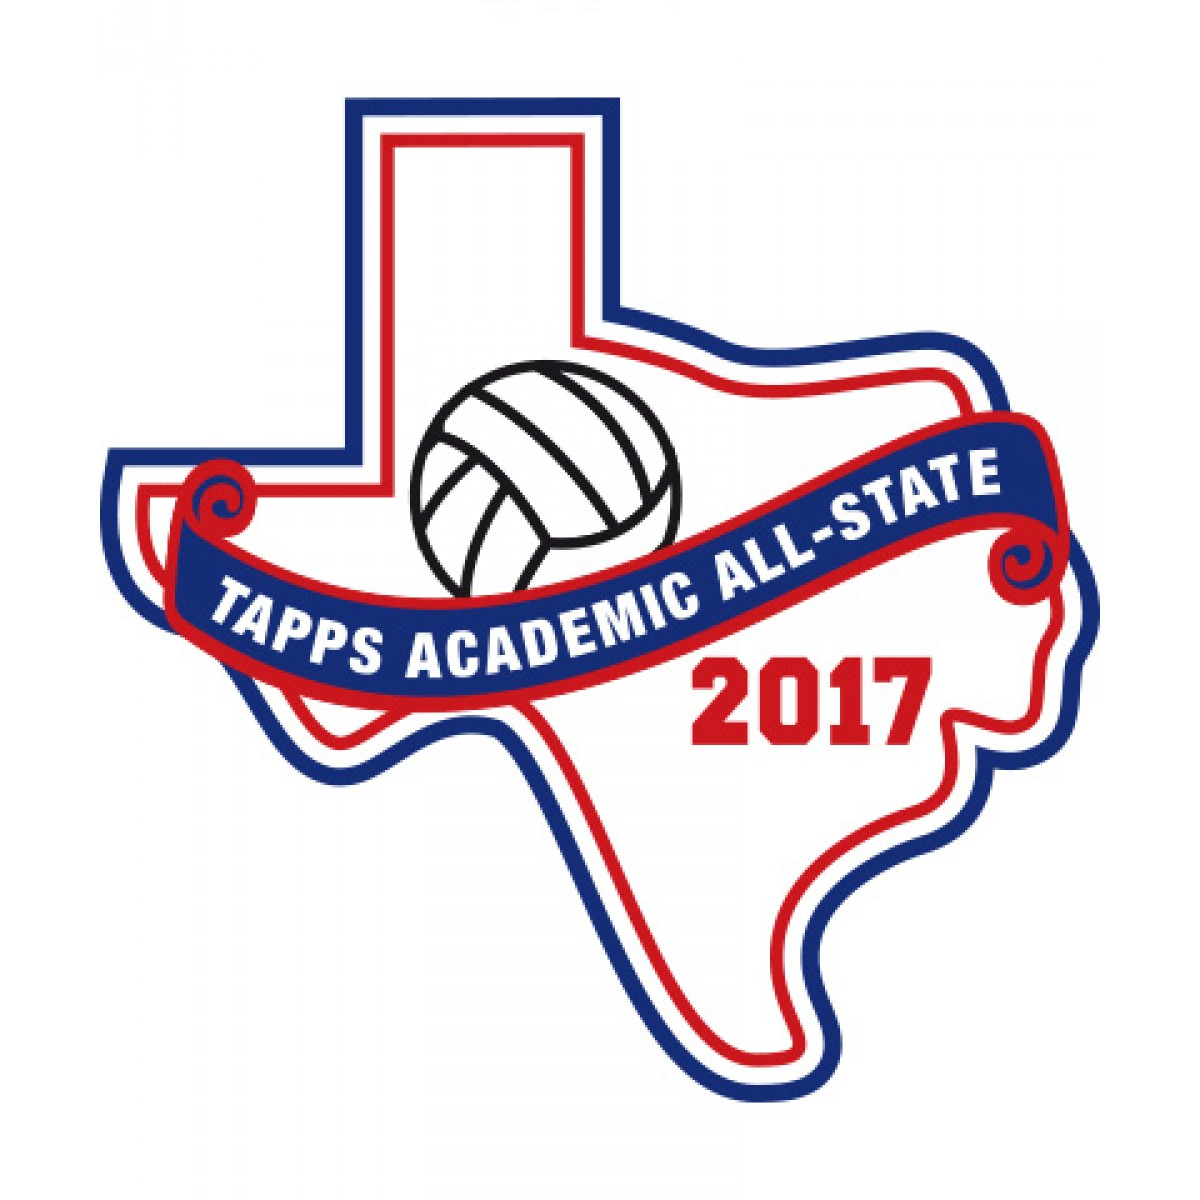 Felt 2017 TAPPS Academic All-State Volleyball Patch